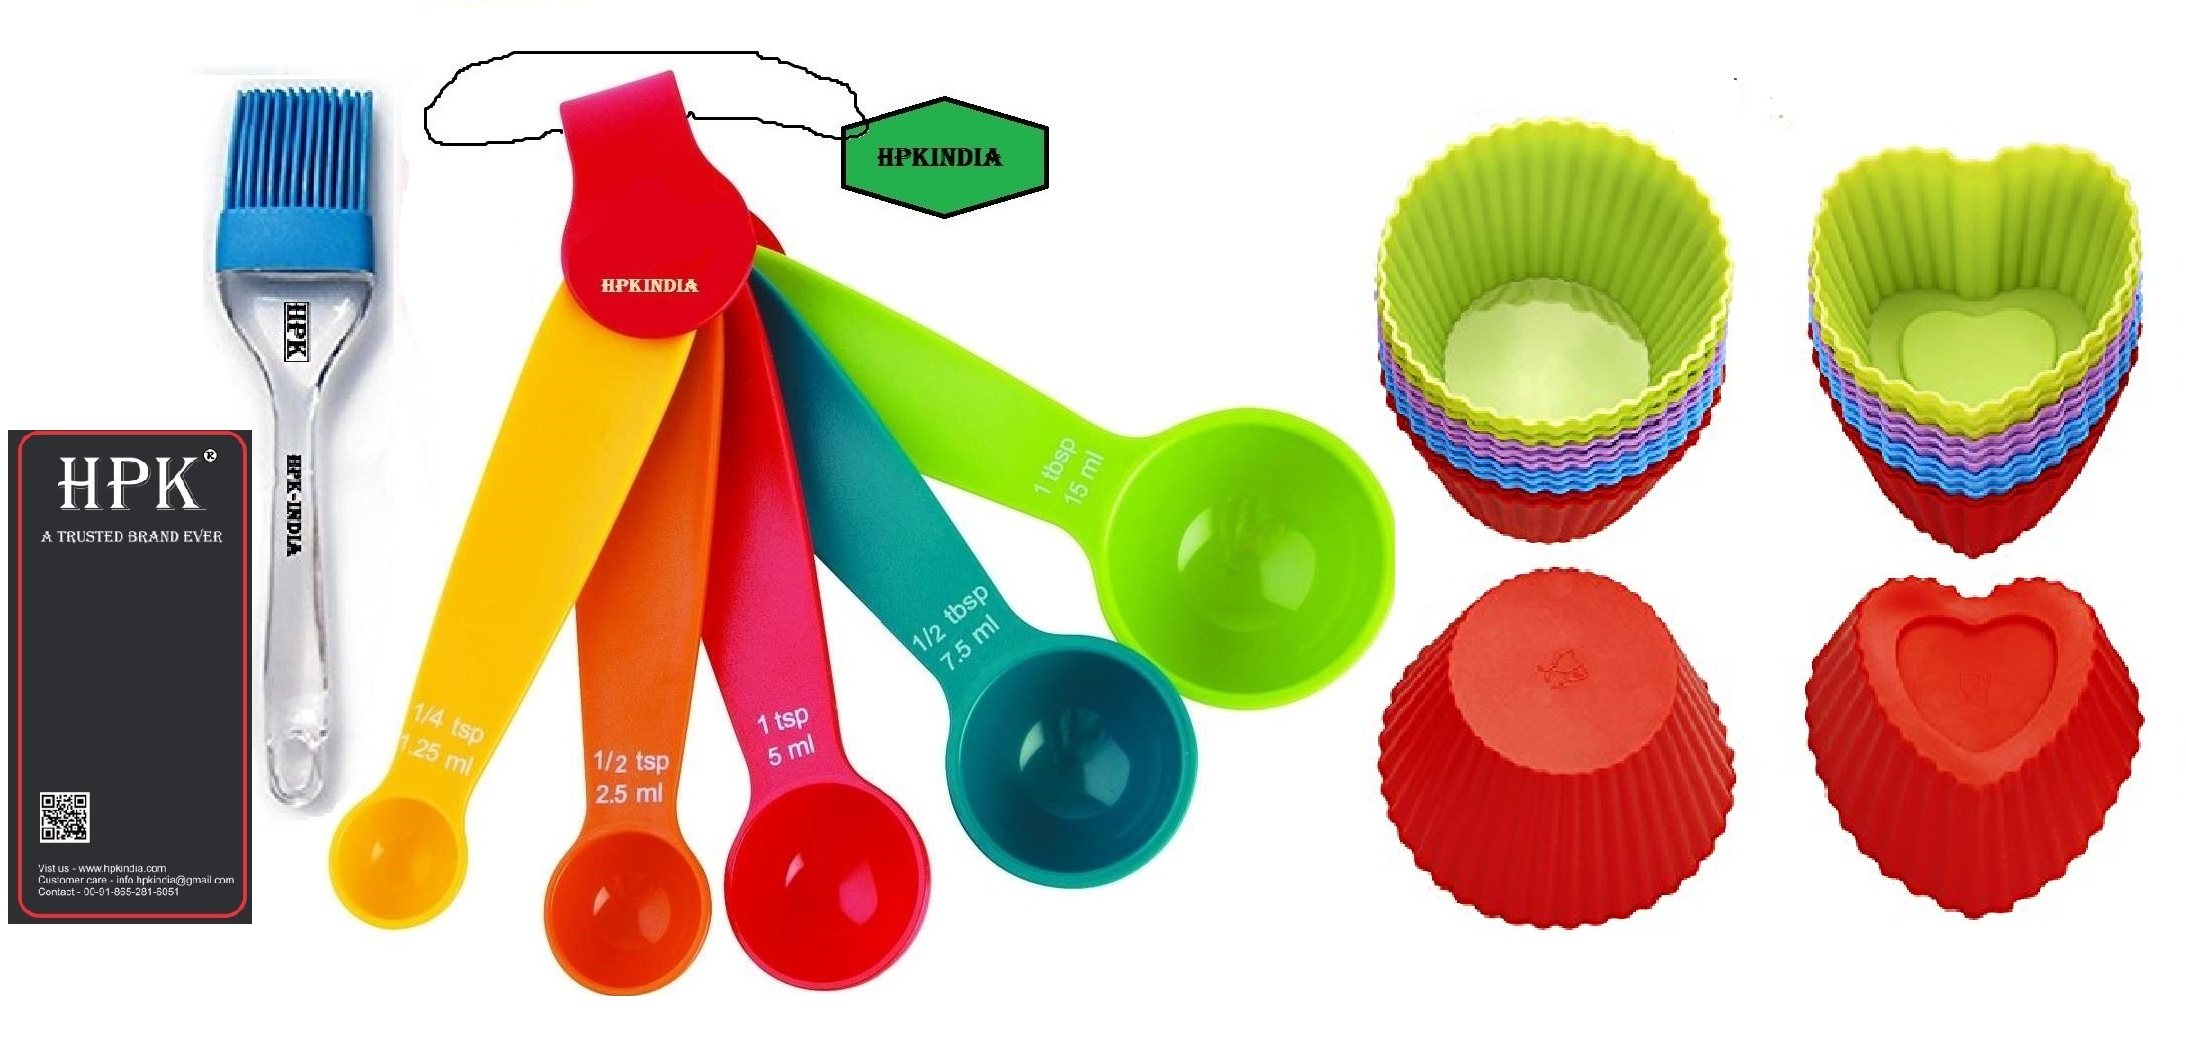 hpk-Baking-Measurement-Measuring-spoons-pastry brush and  heart and round molds Set